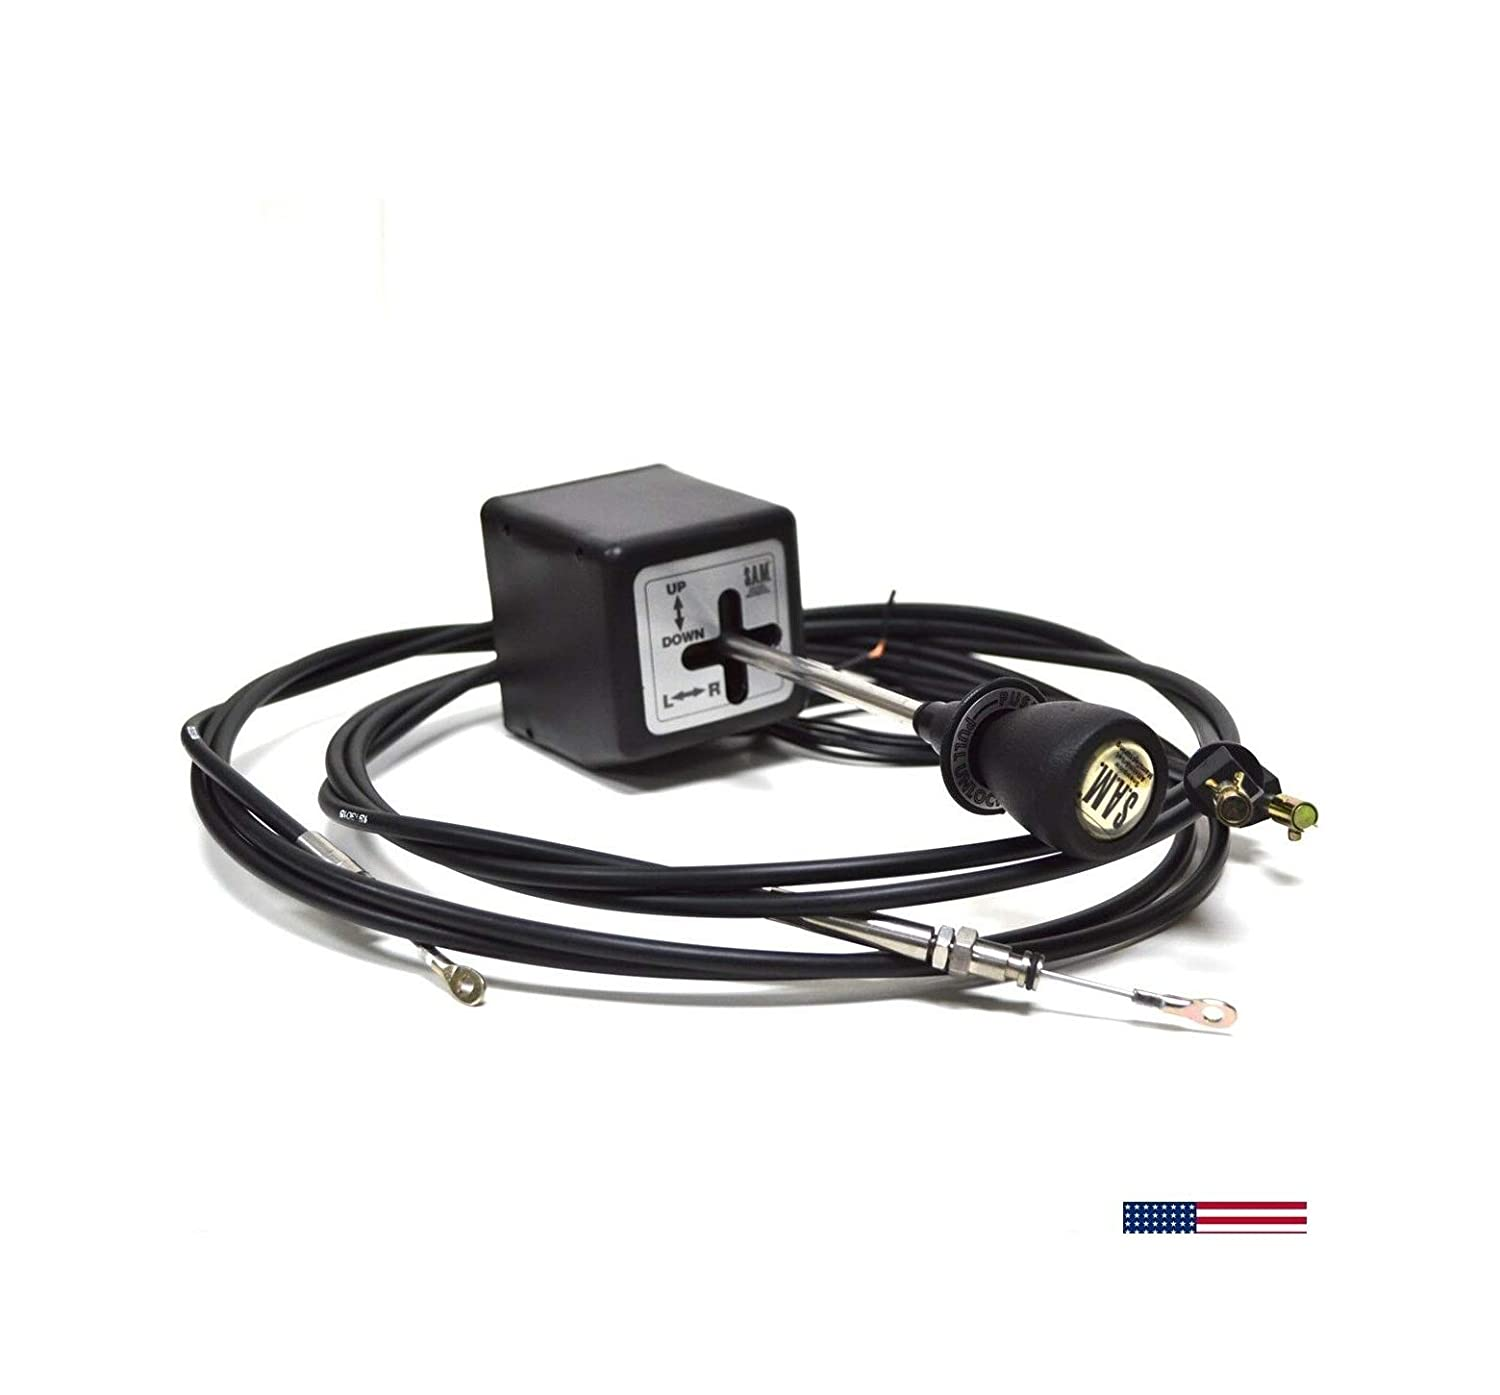 56130 Western A5843 Fisher Snowplow Blade Snow Plow Joystick Control Cable Adjustable